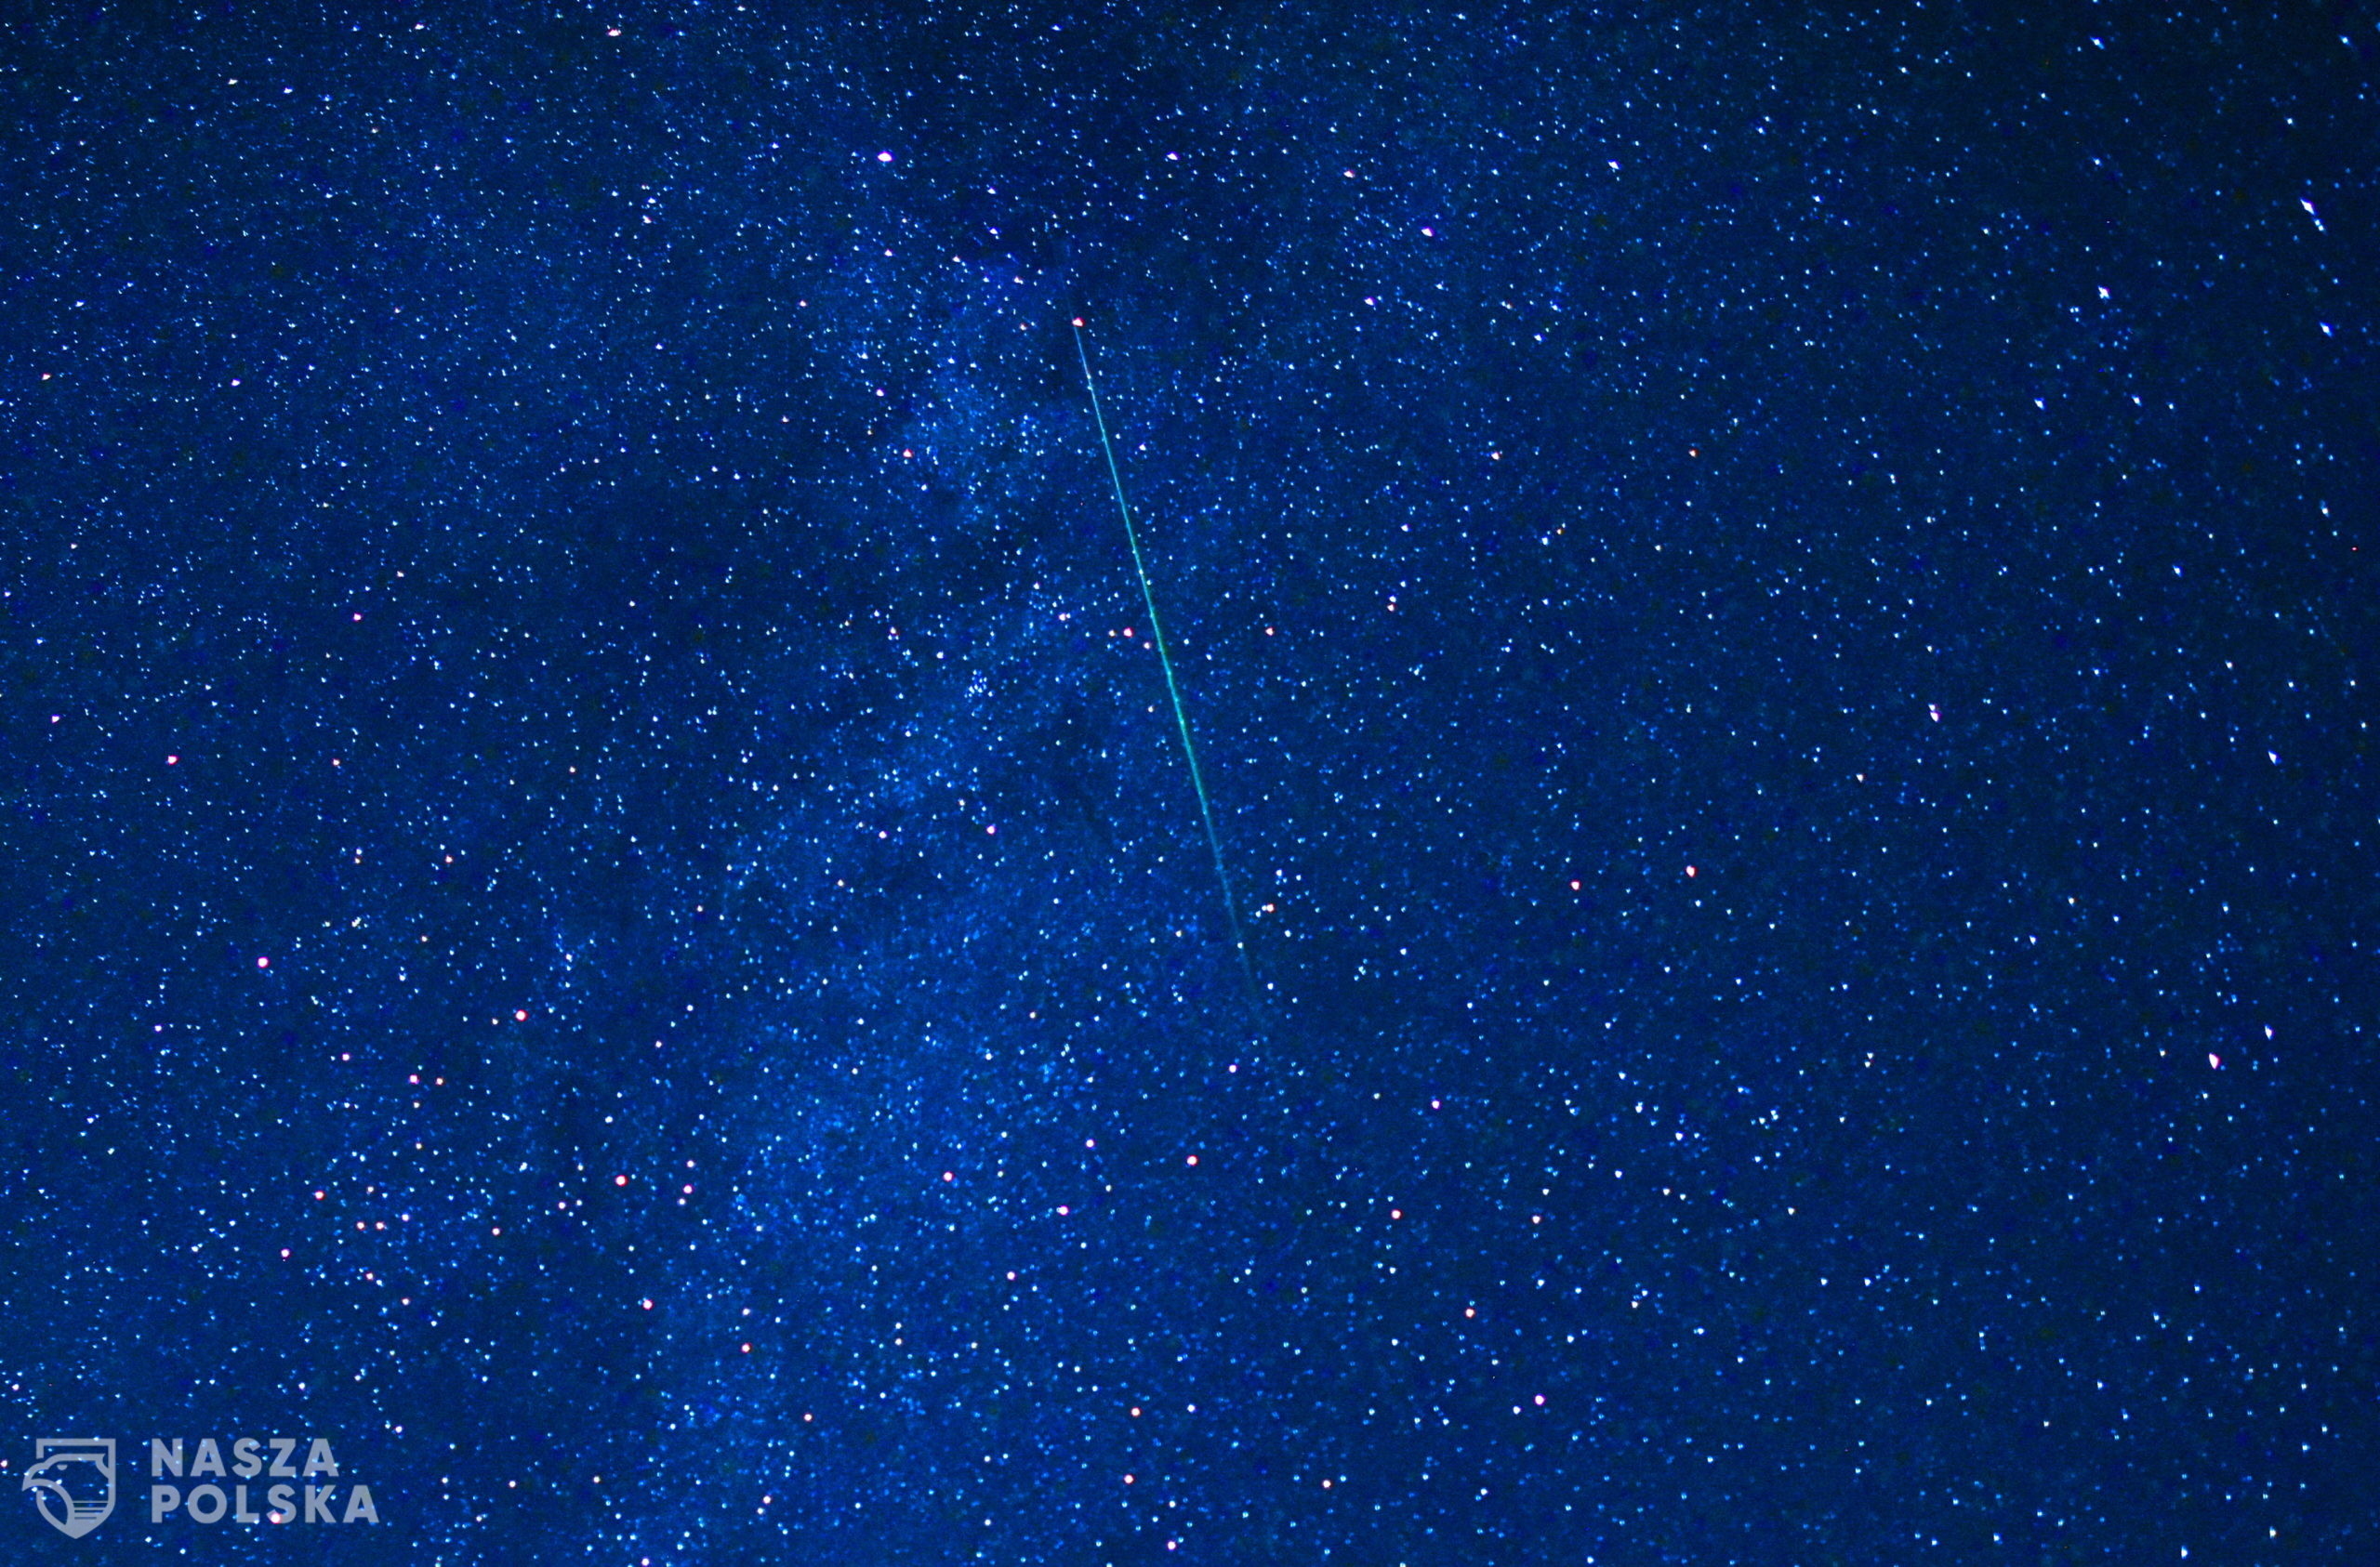 epa08598247 A meteor streaks through the sky during the Perseid meteor shower above the village of Gresnica,some 90 km west from Skopje, Republic of North Macedonia, 11 August 2020. The Perseid meteor shower occurs every year in August when the Earth passes through debris and  some dust of the Swift-Tuttle comet.  EPA/GEORGI LICOVSKI  Dostawca: PAP/EPA.